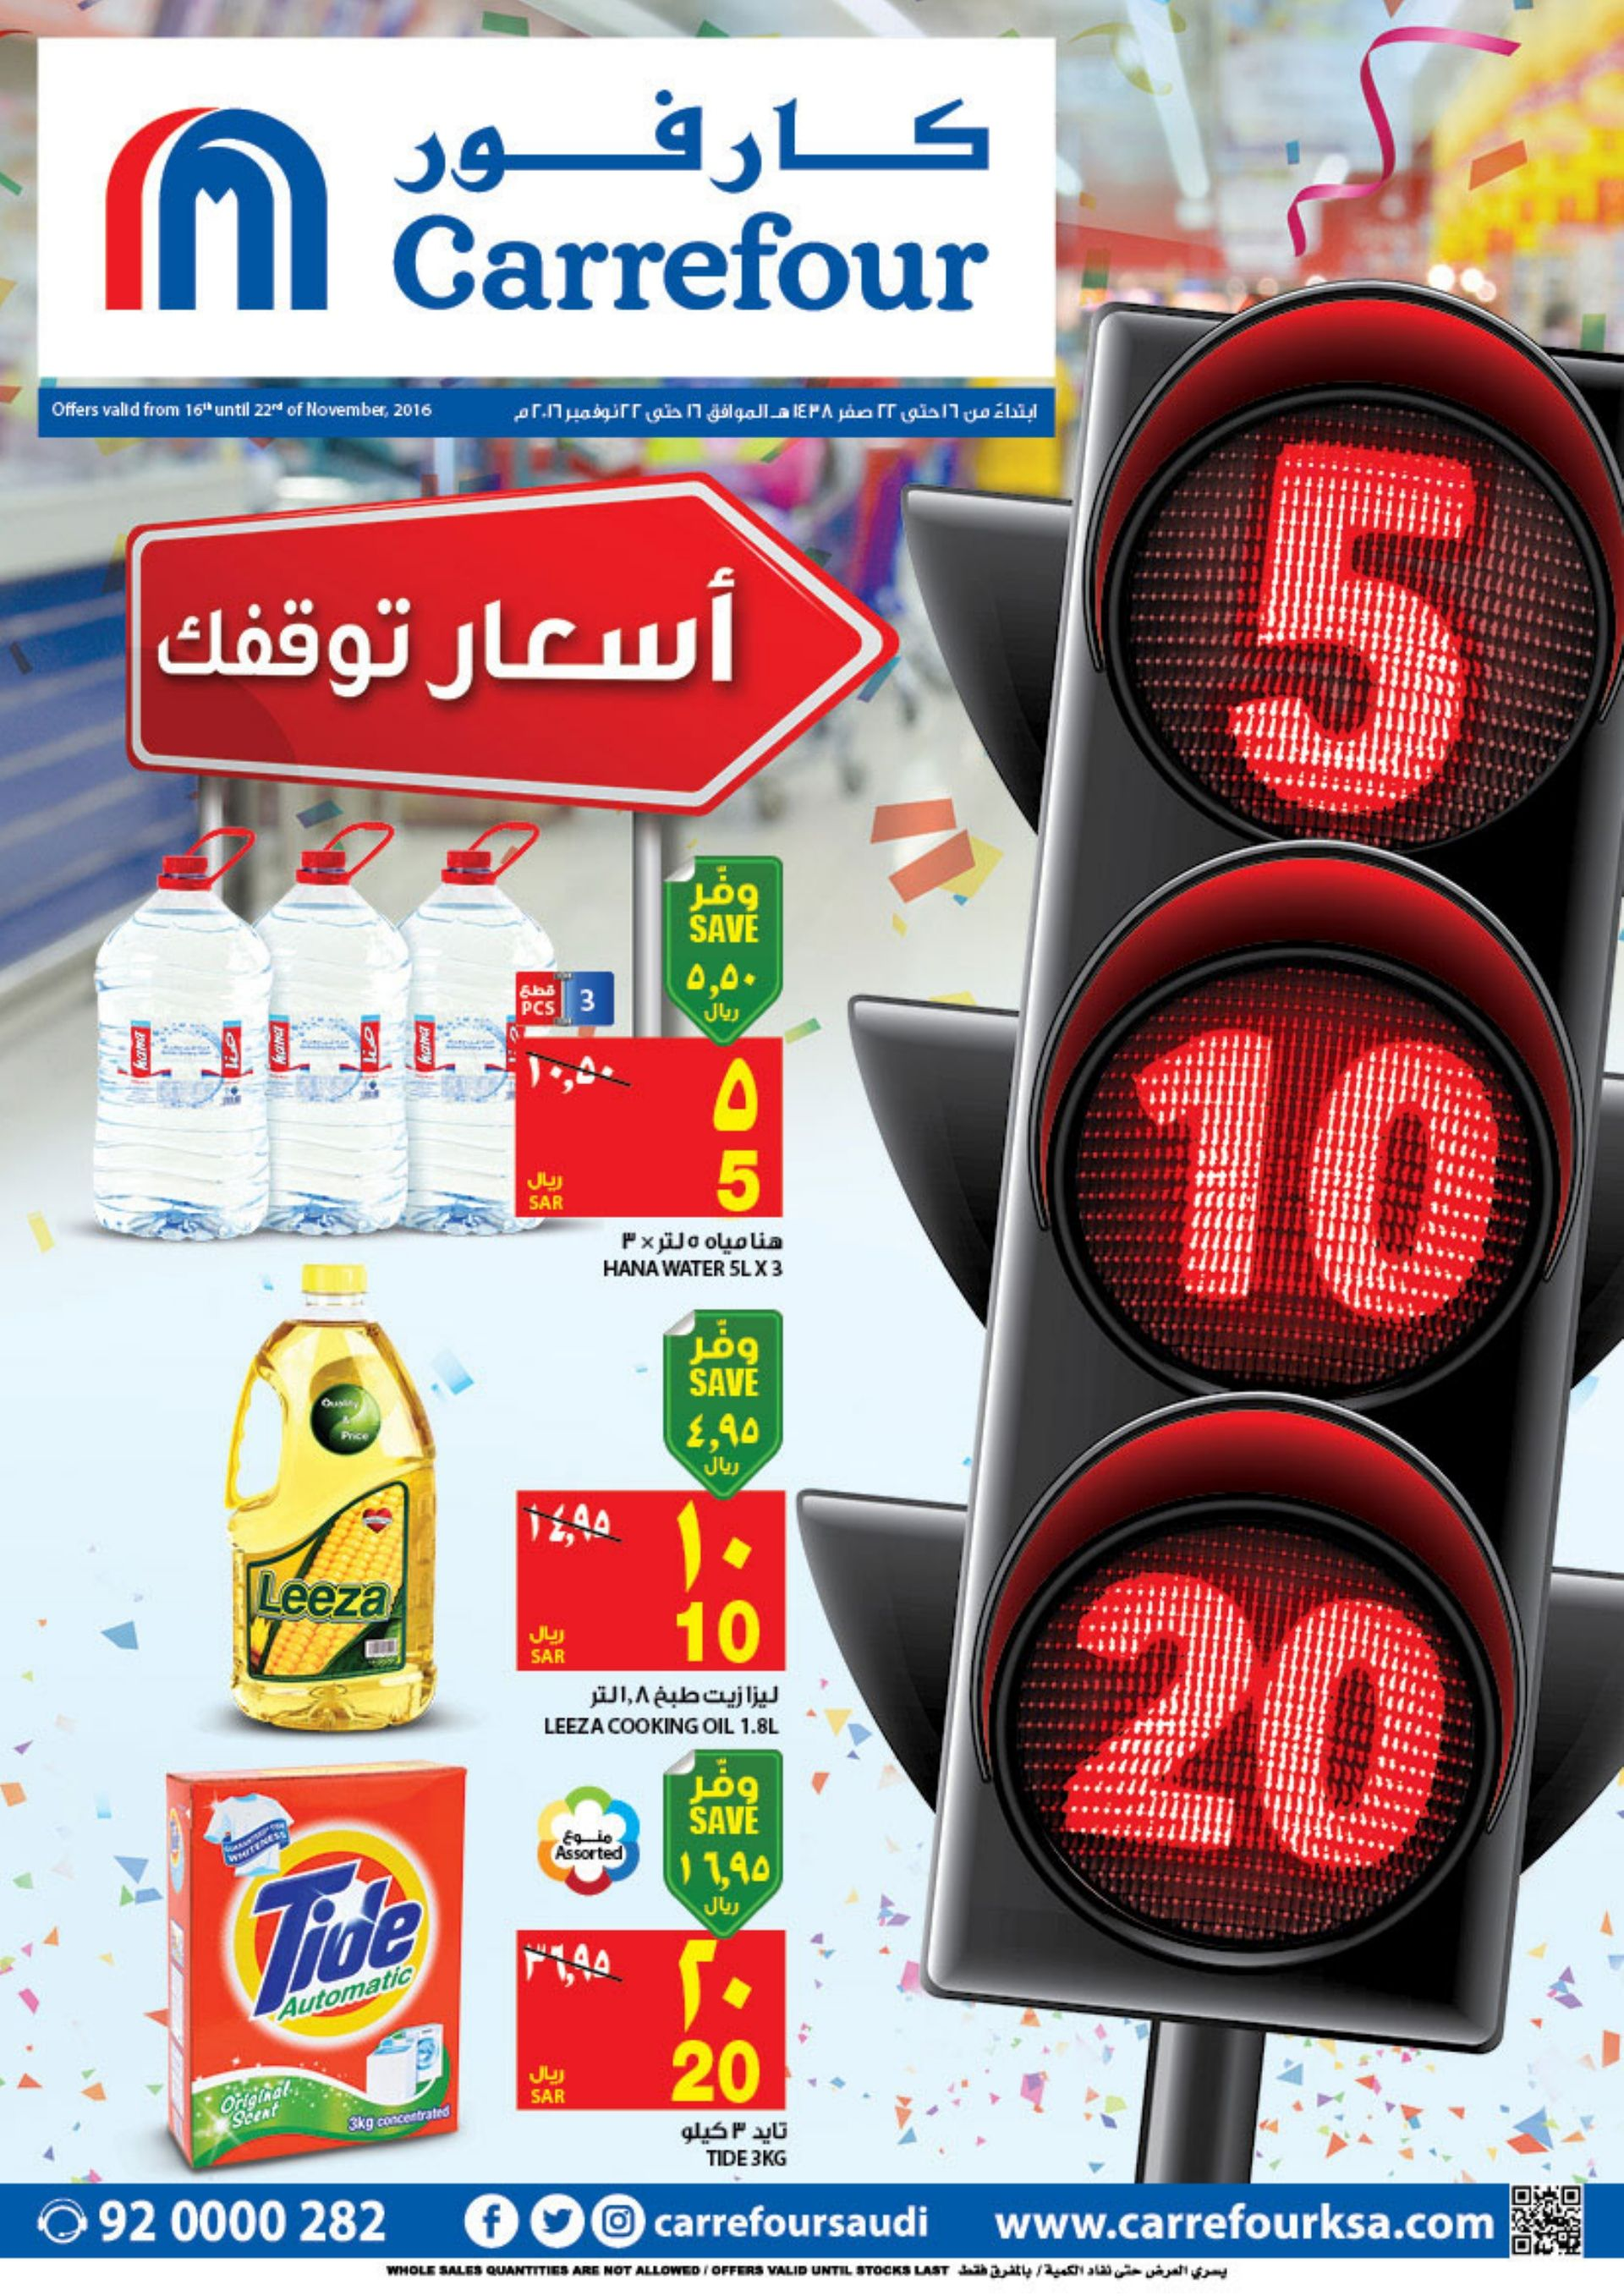 Carrefour Sr 5 10 15 Offer Ksa 16th Nov 2016 To 22nd Nov 2016